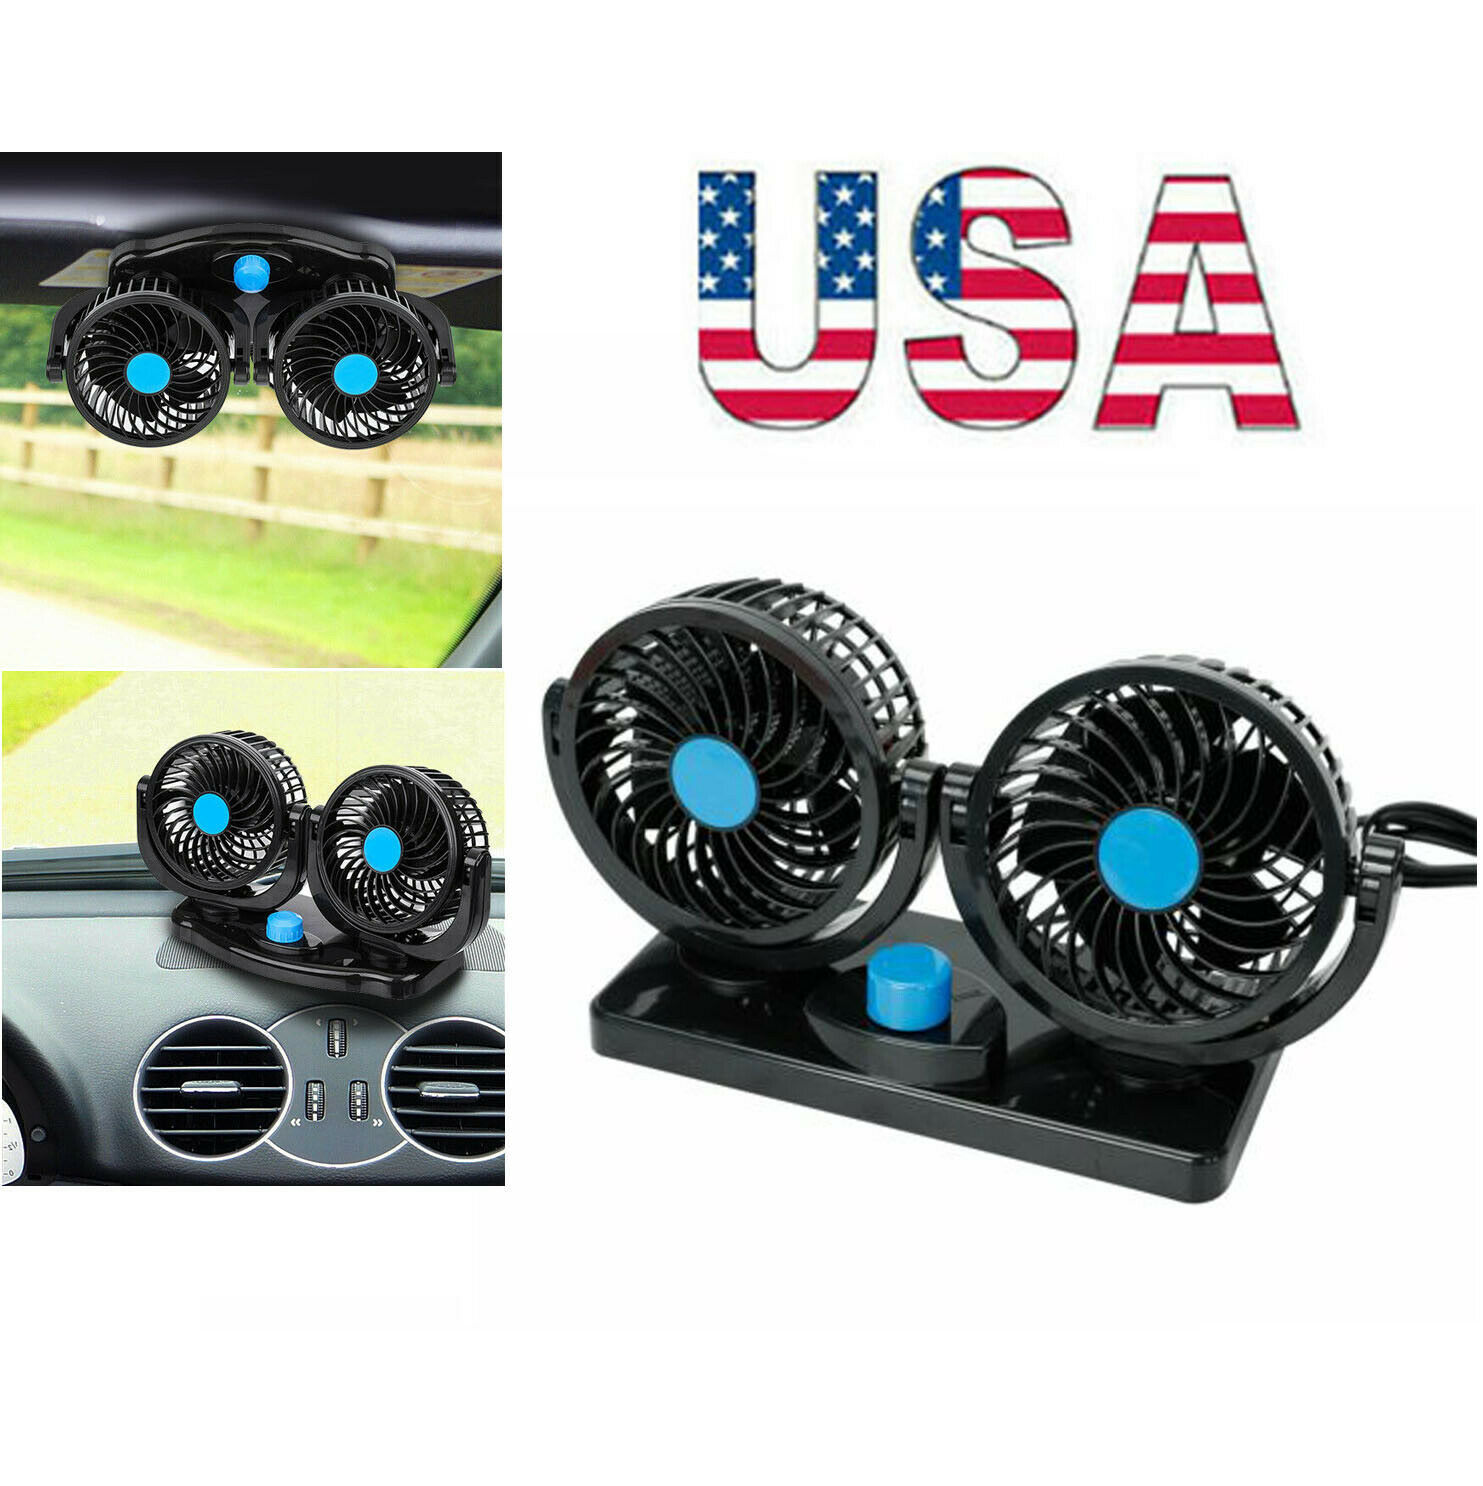 12V Dual Head Car Fan Portable Vehicle Truck 360° Rotatable Auto Cooling Cooler Car & Truck Parts